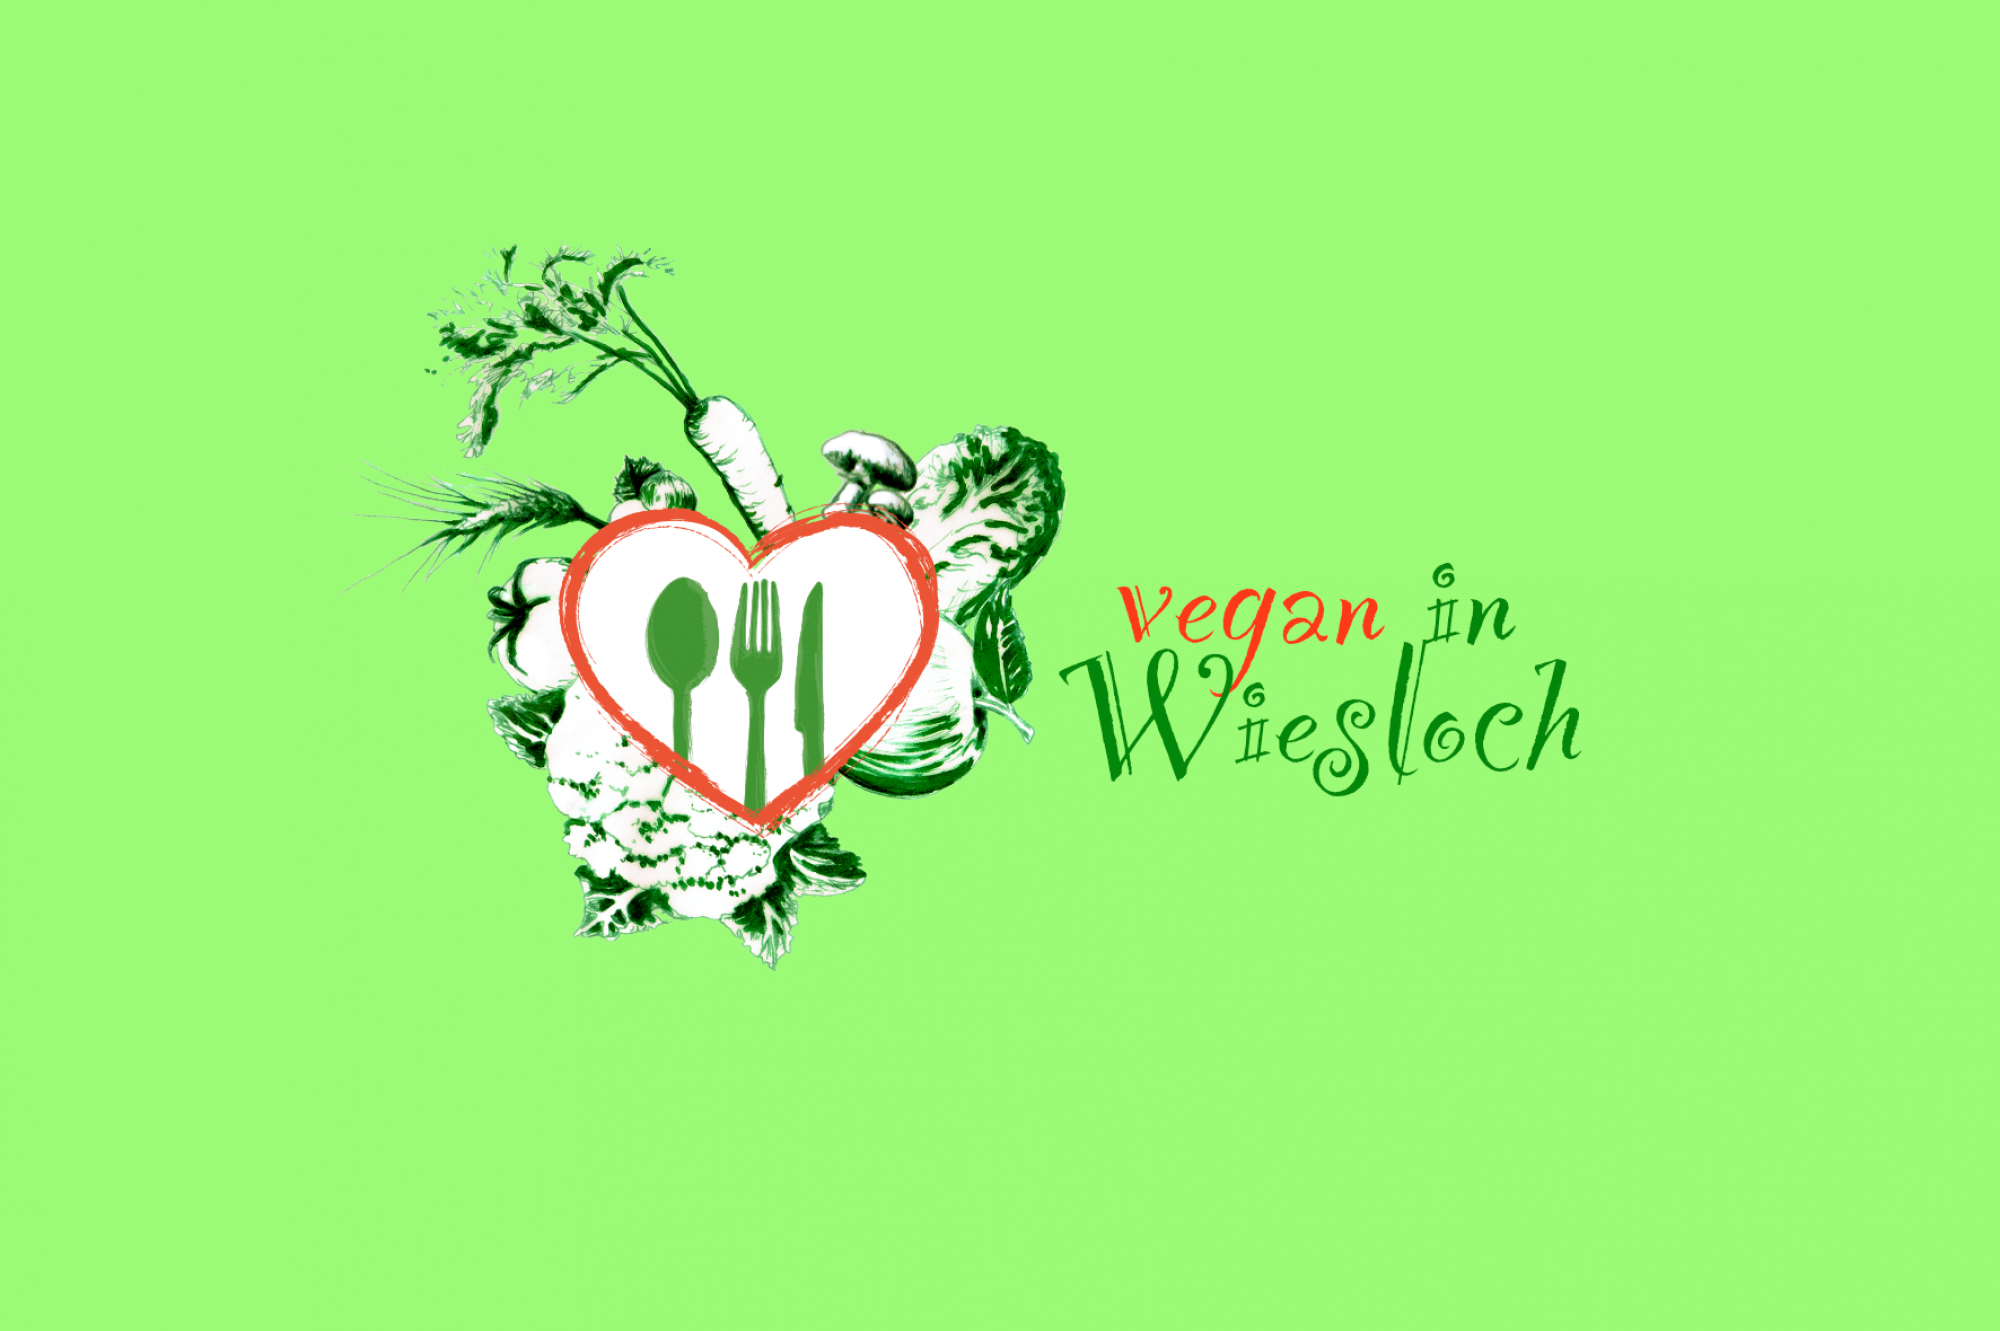 Vegan in Wiesloch